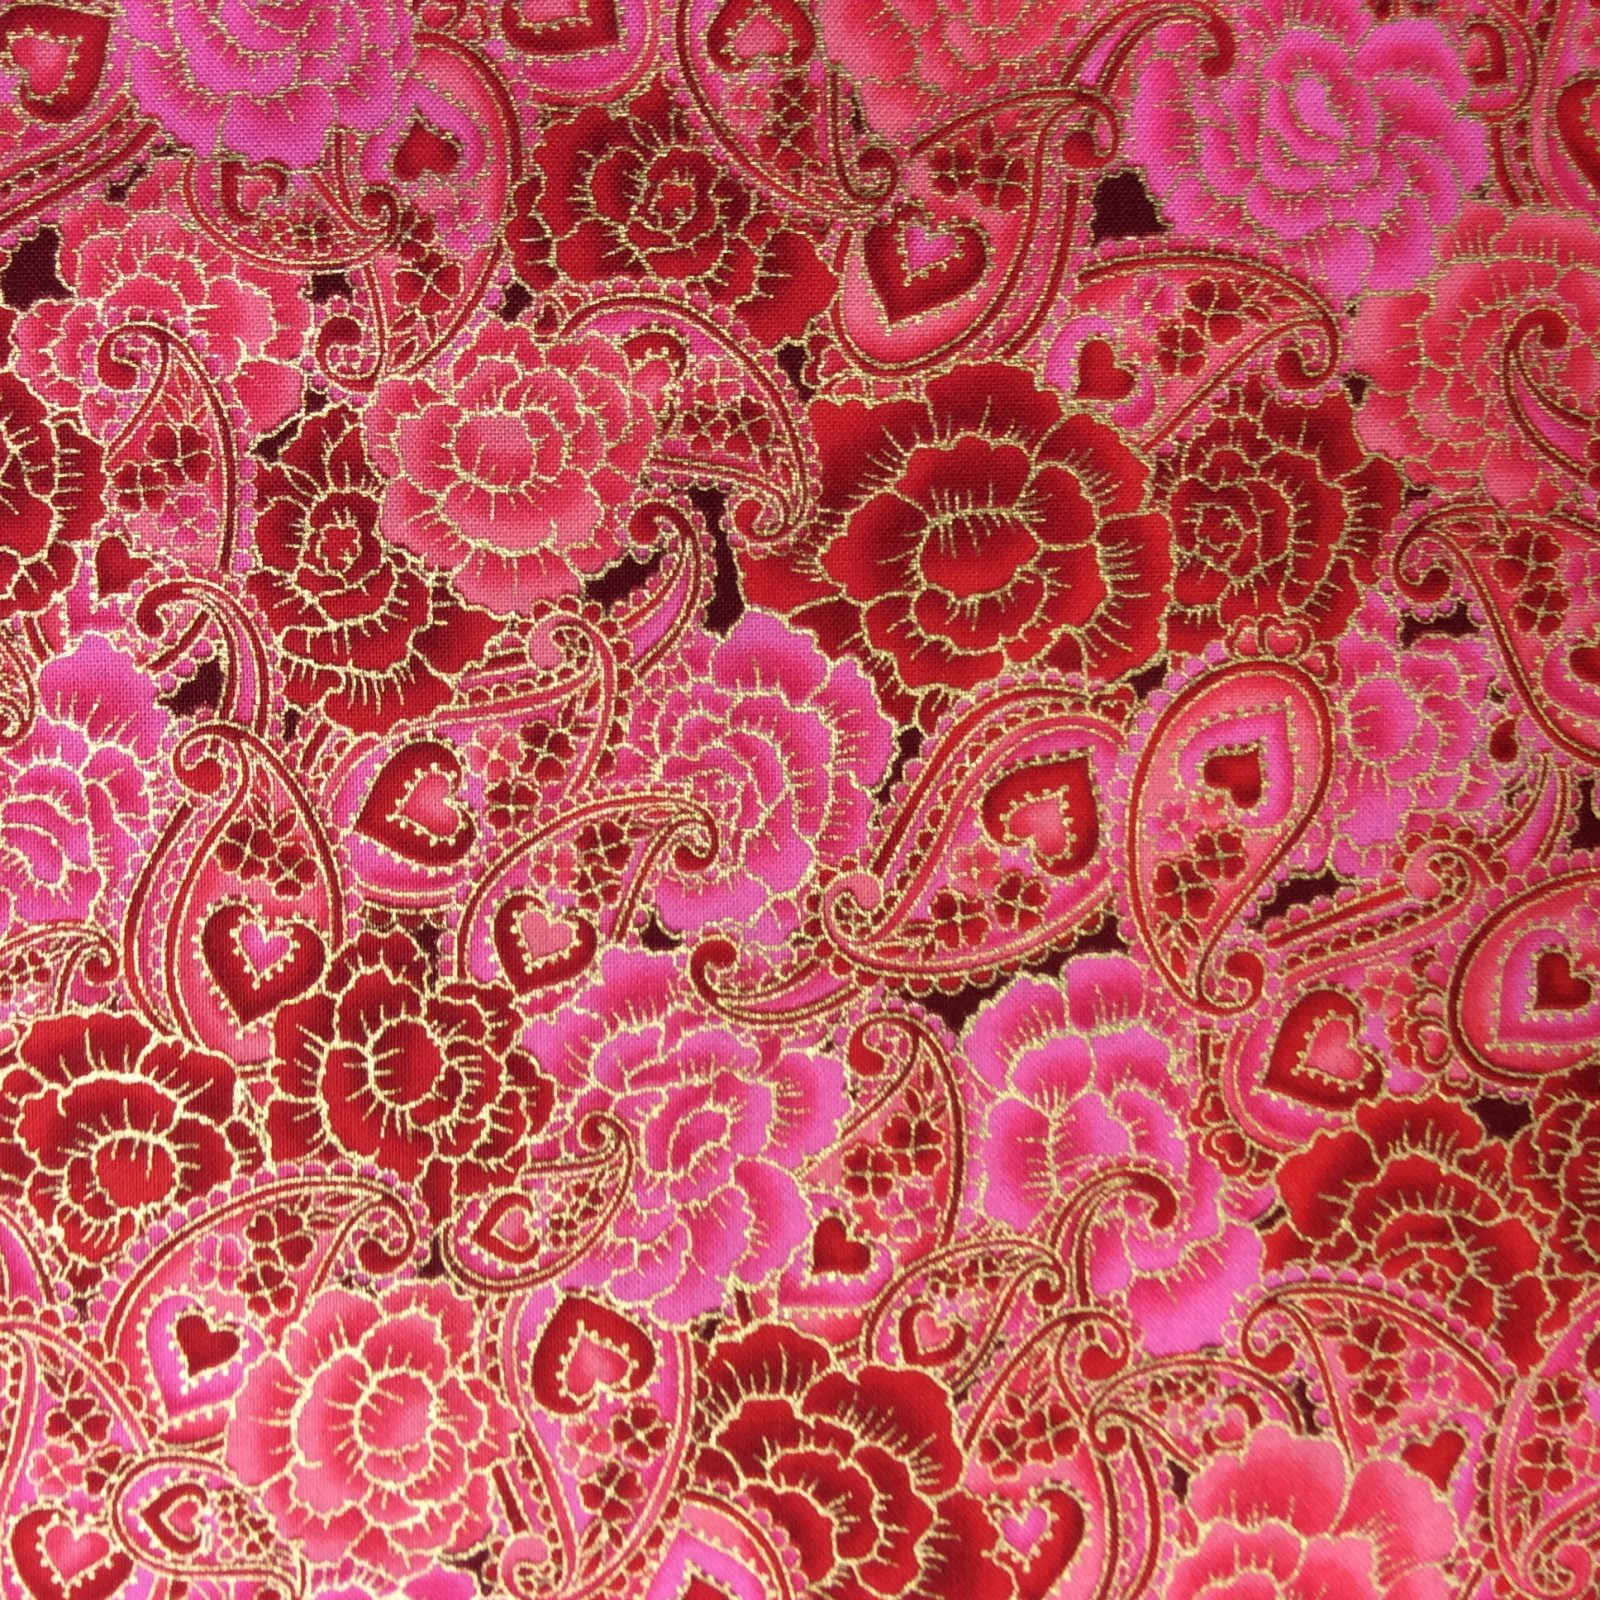 Asian Floral Rose Paisley Japan Love Romance Heart Quilting Cotton Fabric MD63